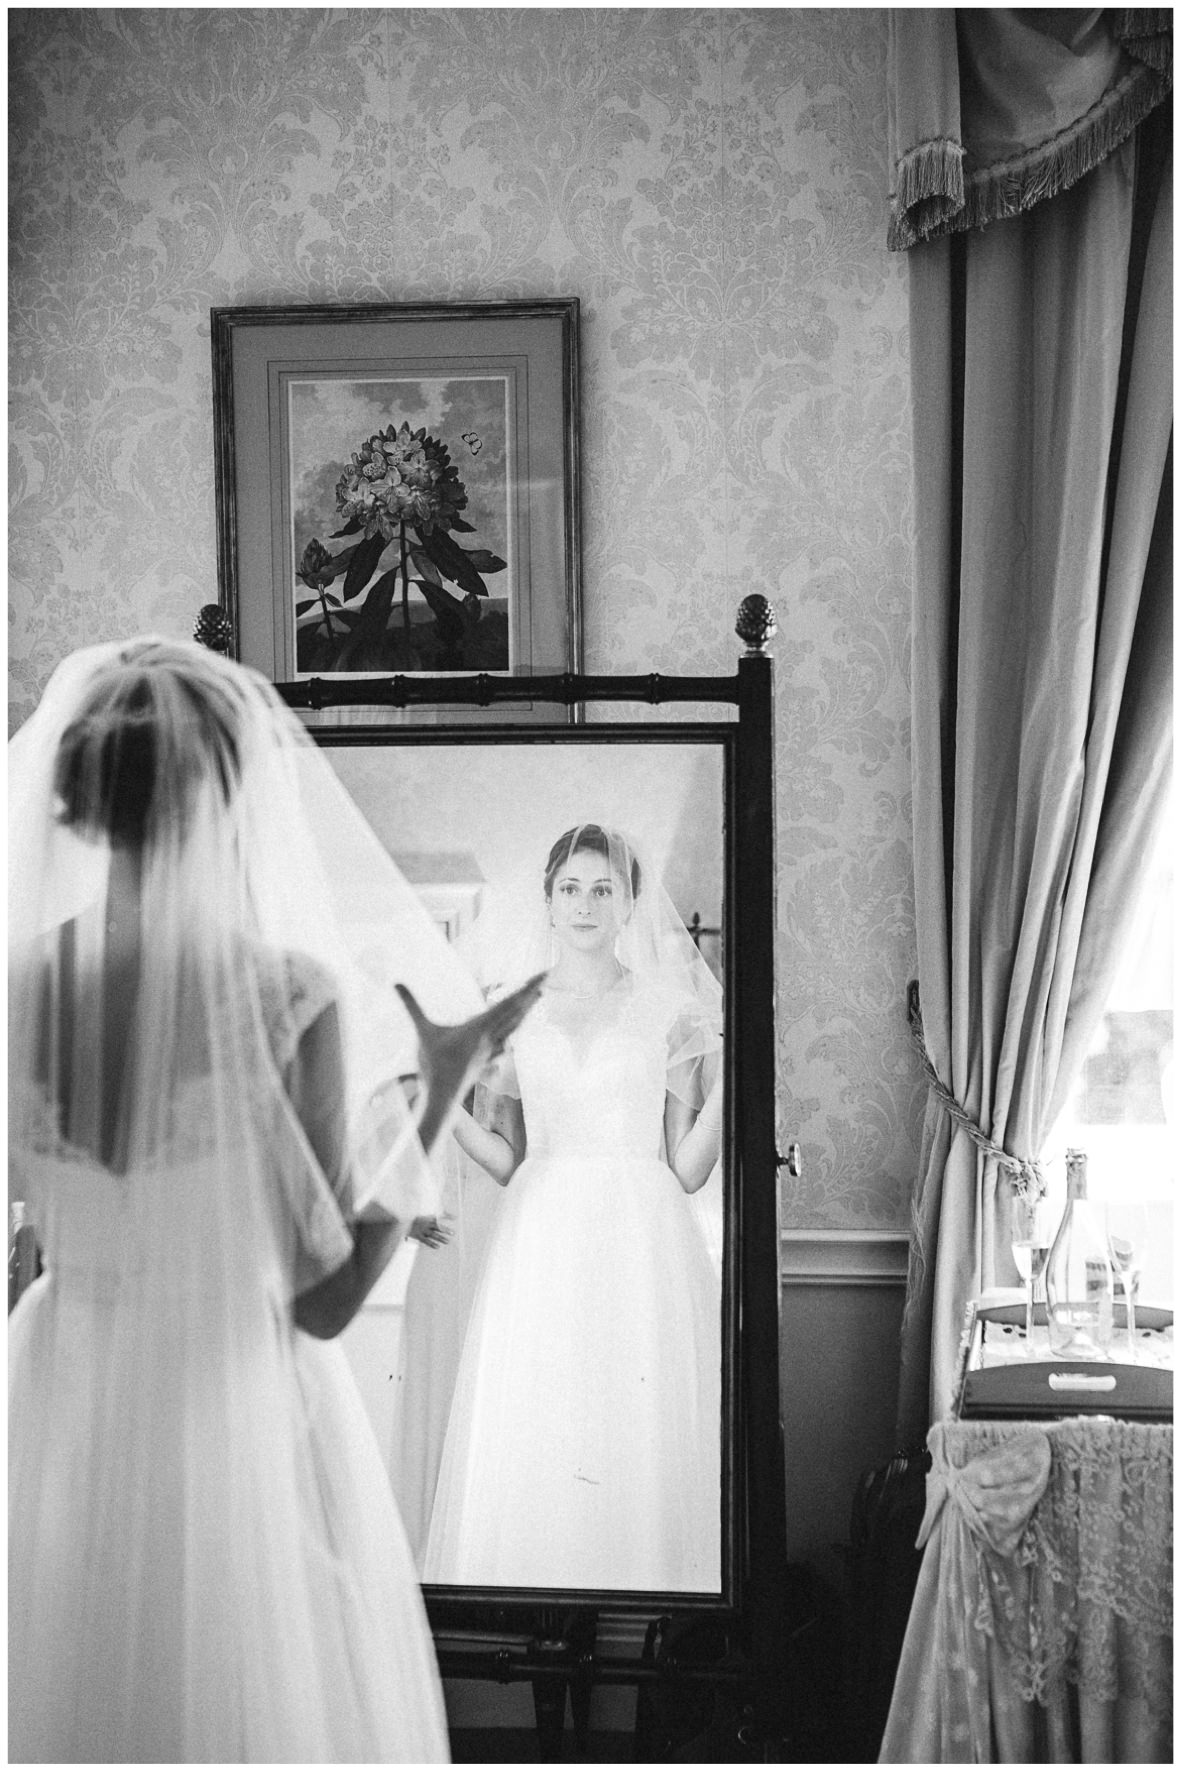 Lucy Davenport Photography, Cornwell Manor, wedding venue, Oxfordshire, Cotswold wedding, bridal suite, bride getting ready, mirror, veil, bride